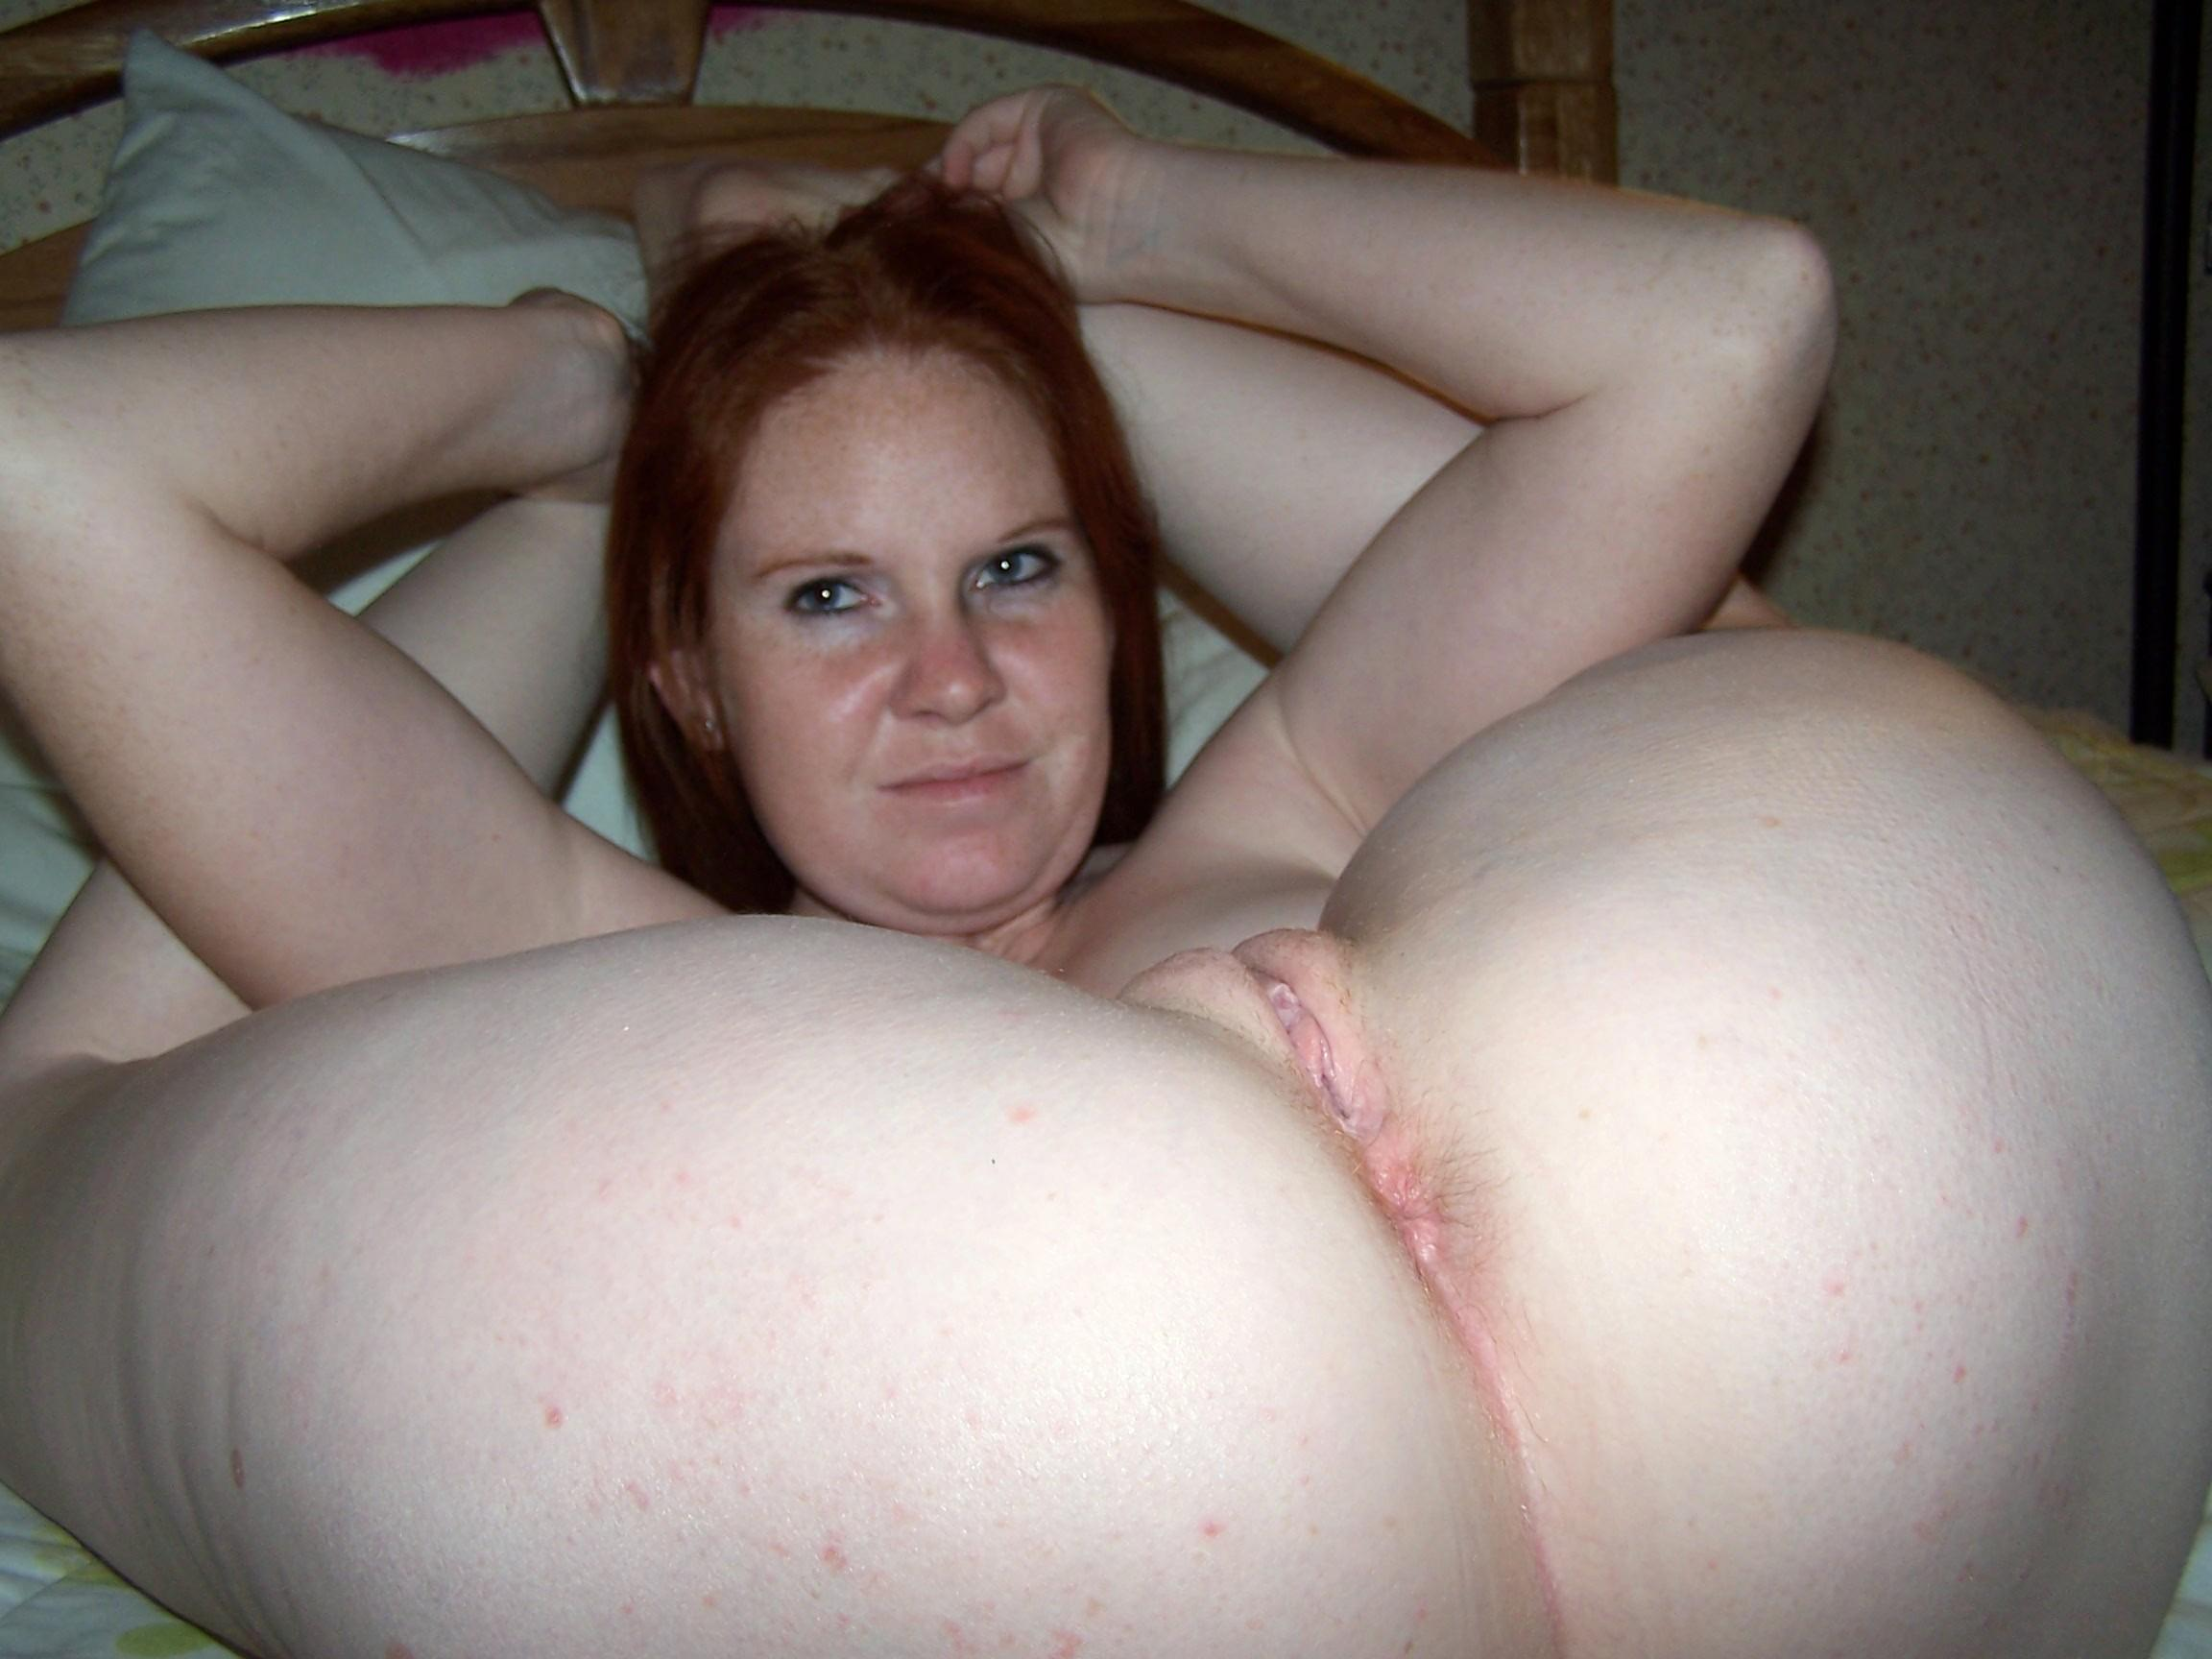 slut Amateur hairy